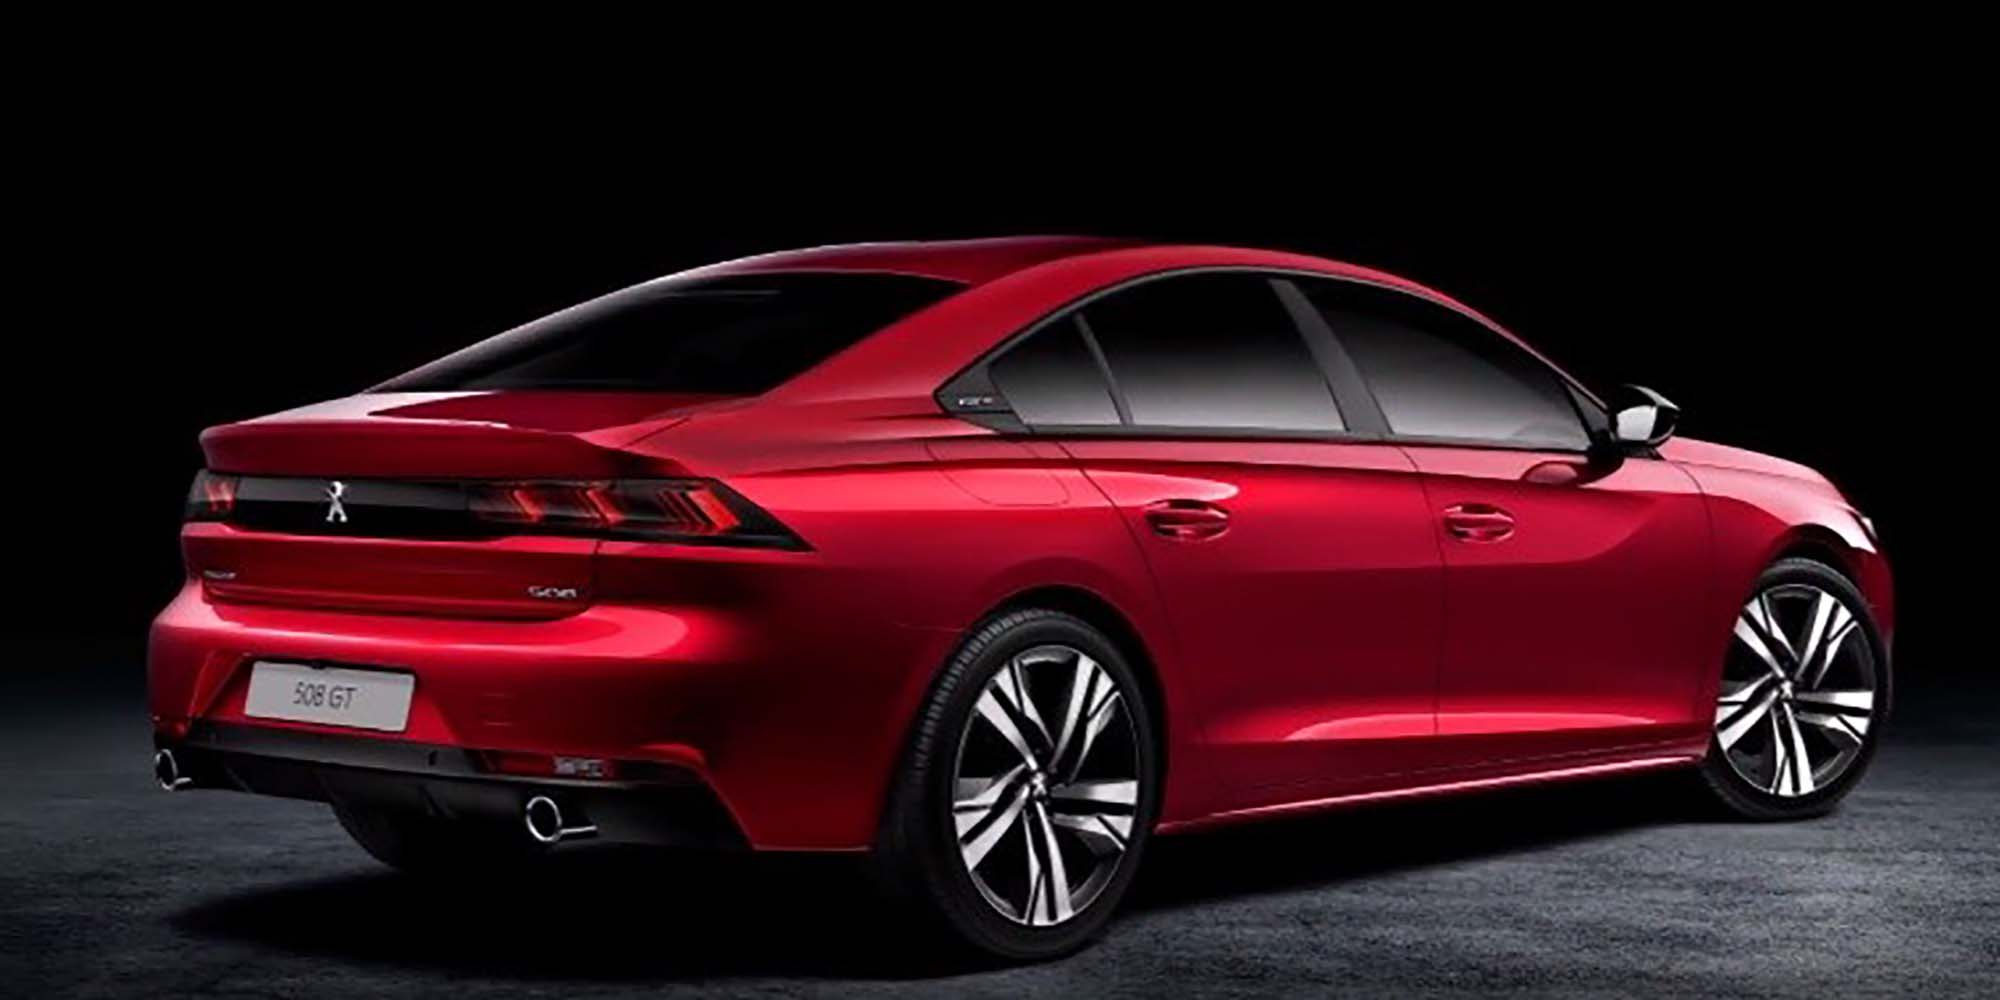 Peugeot 508 New Model 2018 >> 2018 Peugeot 508 leaked - Photos